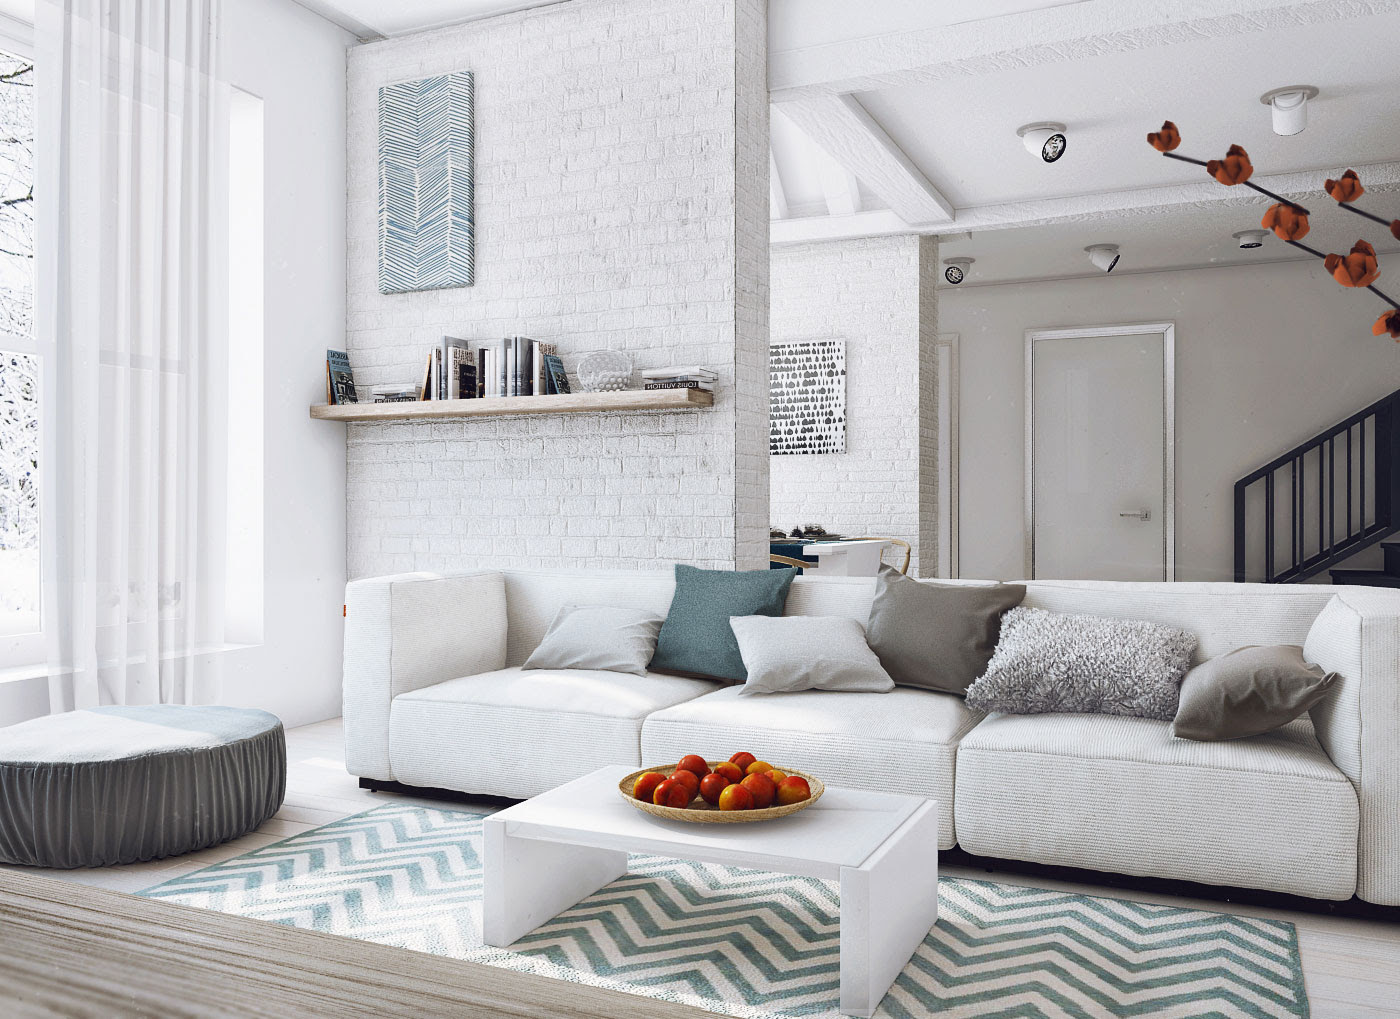 Loft Style Country House by Angelina Alexeeva   HomeDSGN, a daily ...